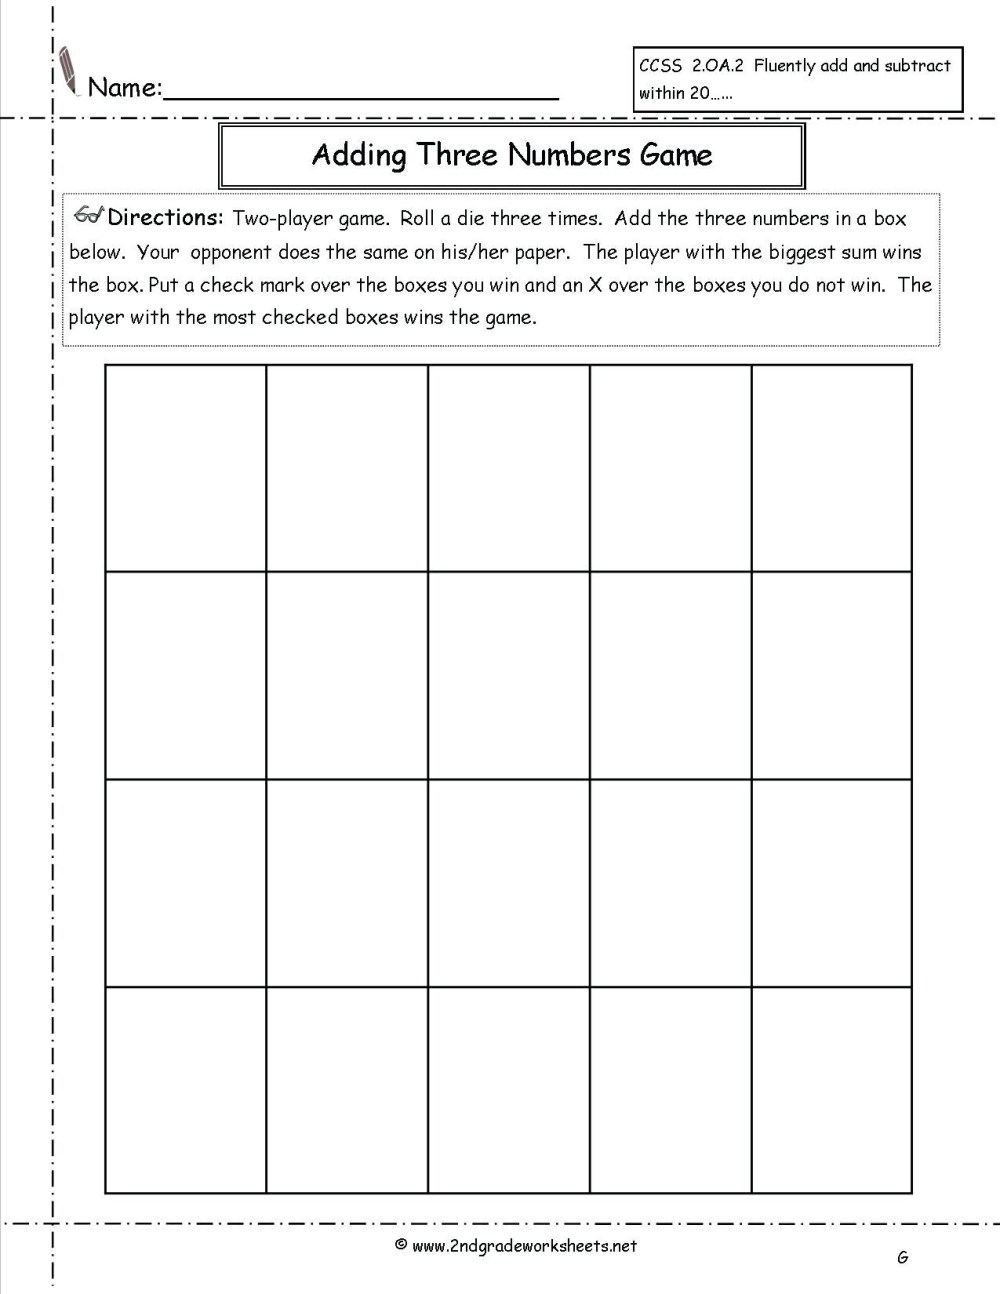 medium resolution of 5 Free Math Worksheets Second Grade 2 Subtraction Subtract 3 Digit Numbers  with Regrouping - AMP